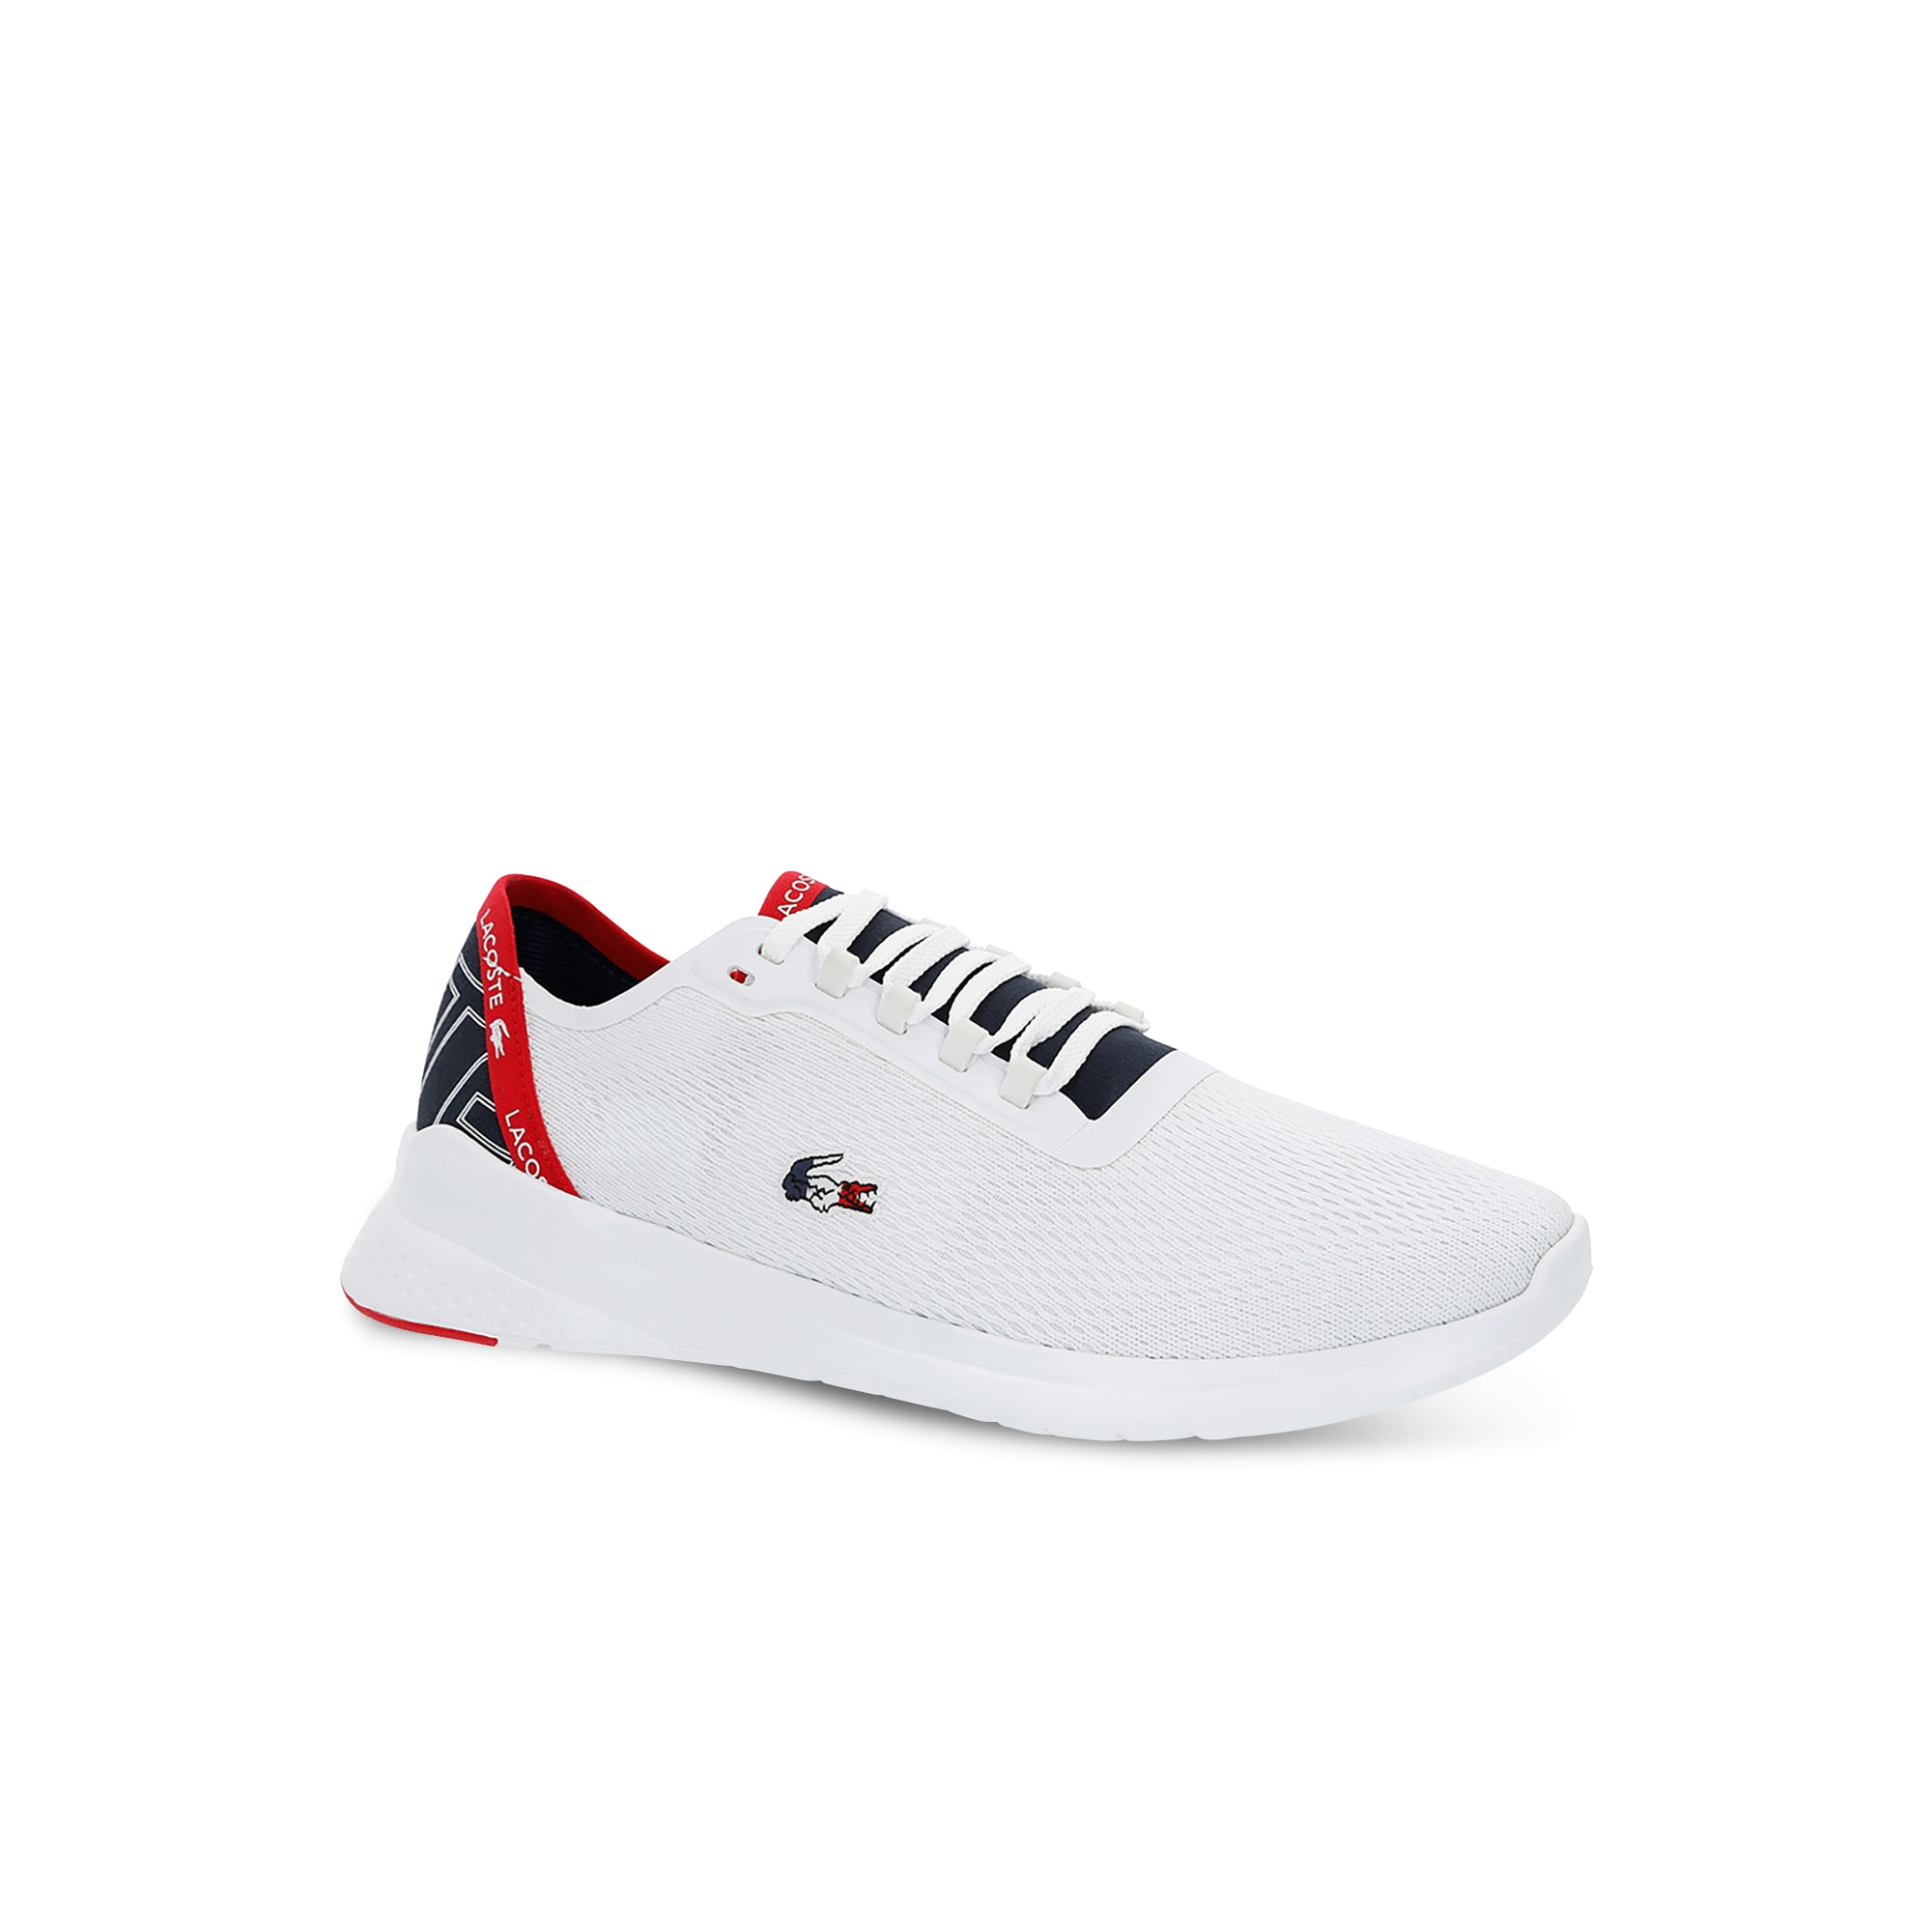 c3f34df6c71 Men s LT Fit Sneakers with Tricolor Croc